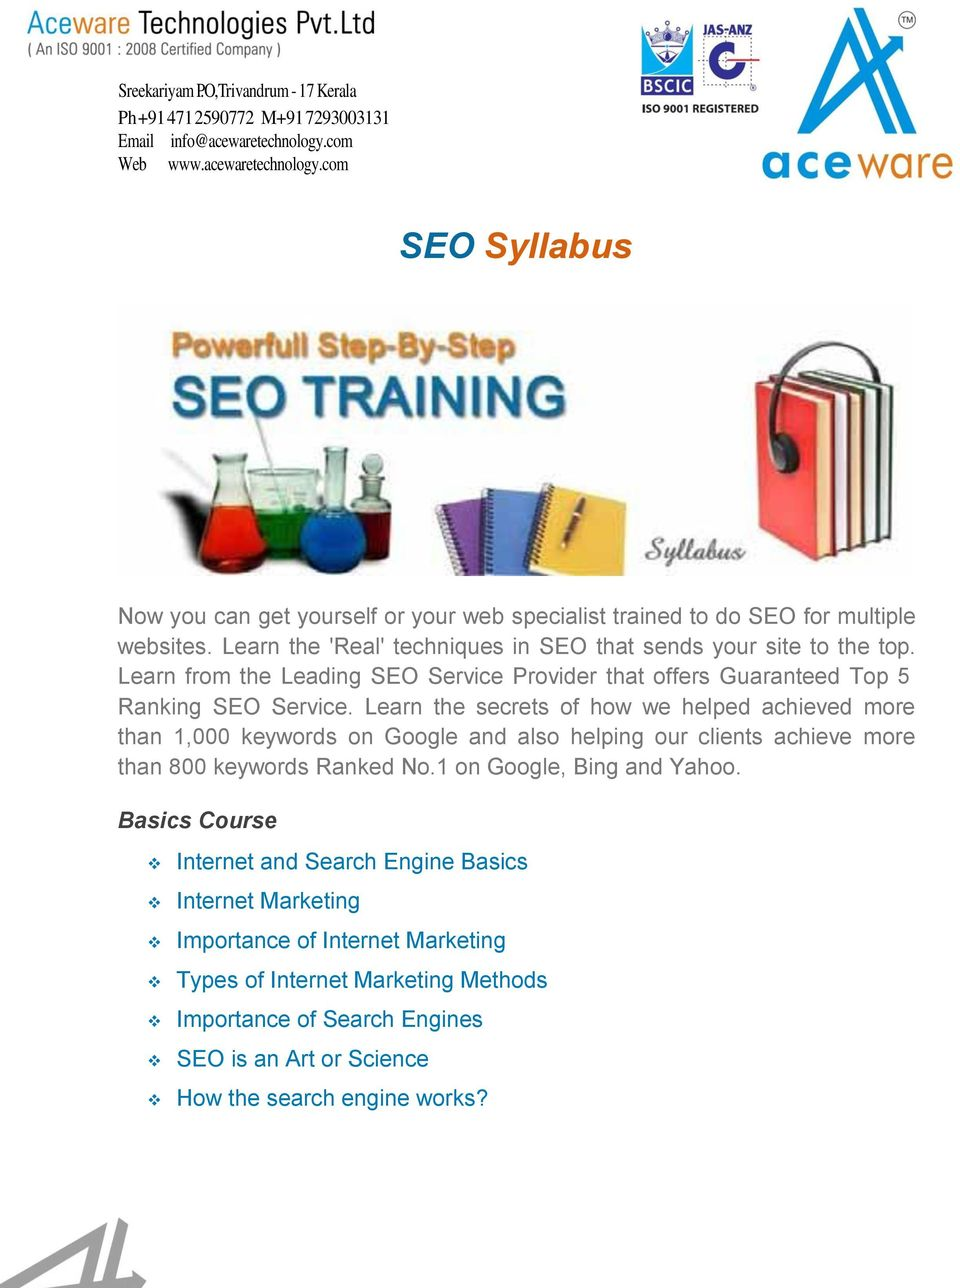 Learn the 'Real' techniques in SEO that sends your site to the top. Learn from the Leading SEO Service Provider that offers Guaranteed Top 5 Ranking SEO Service.